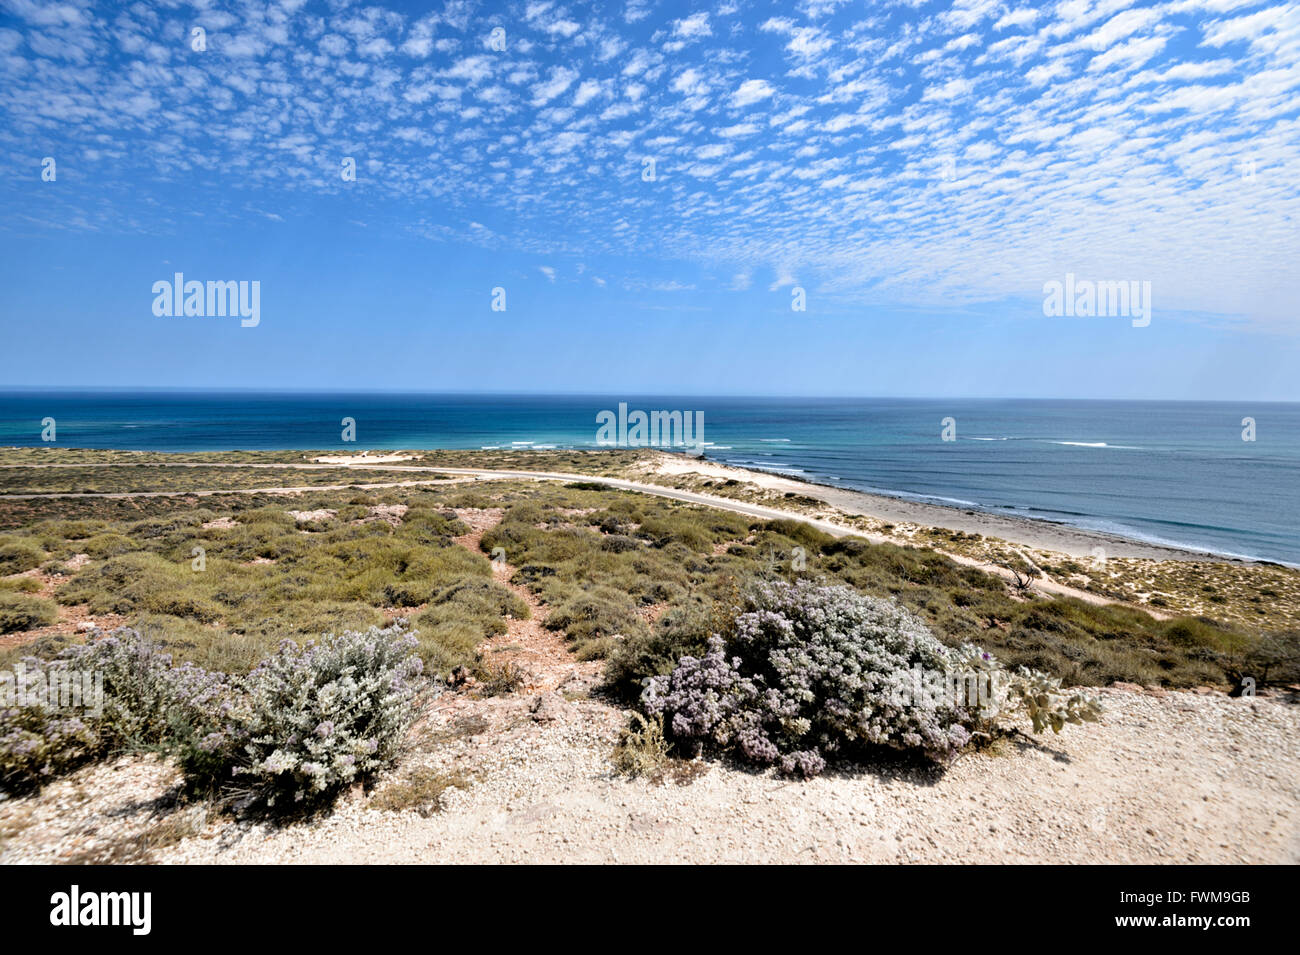 La costa de Ningaloo, Australia Occidental, WA, Australia Imagen De Stock